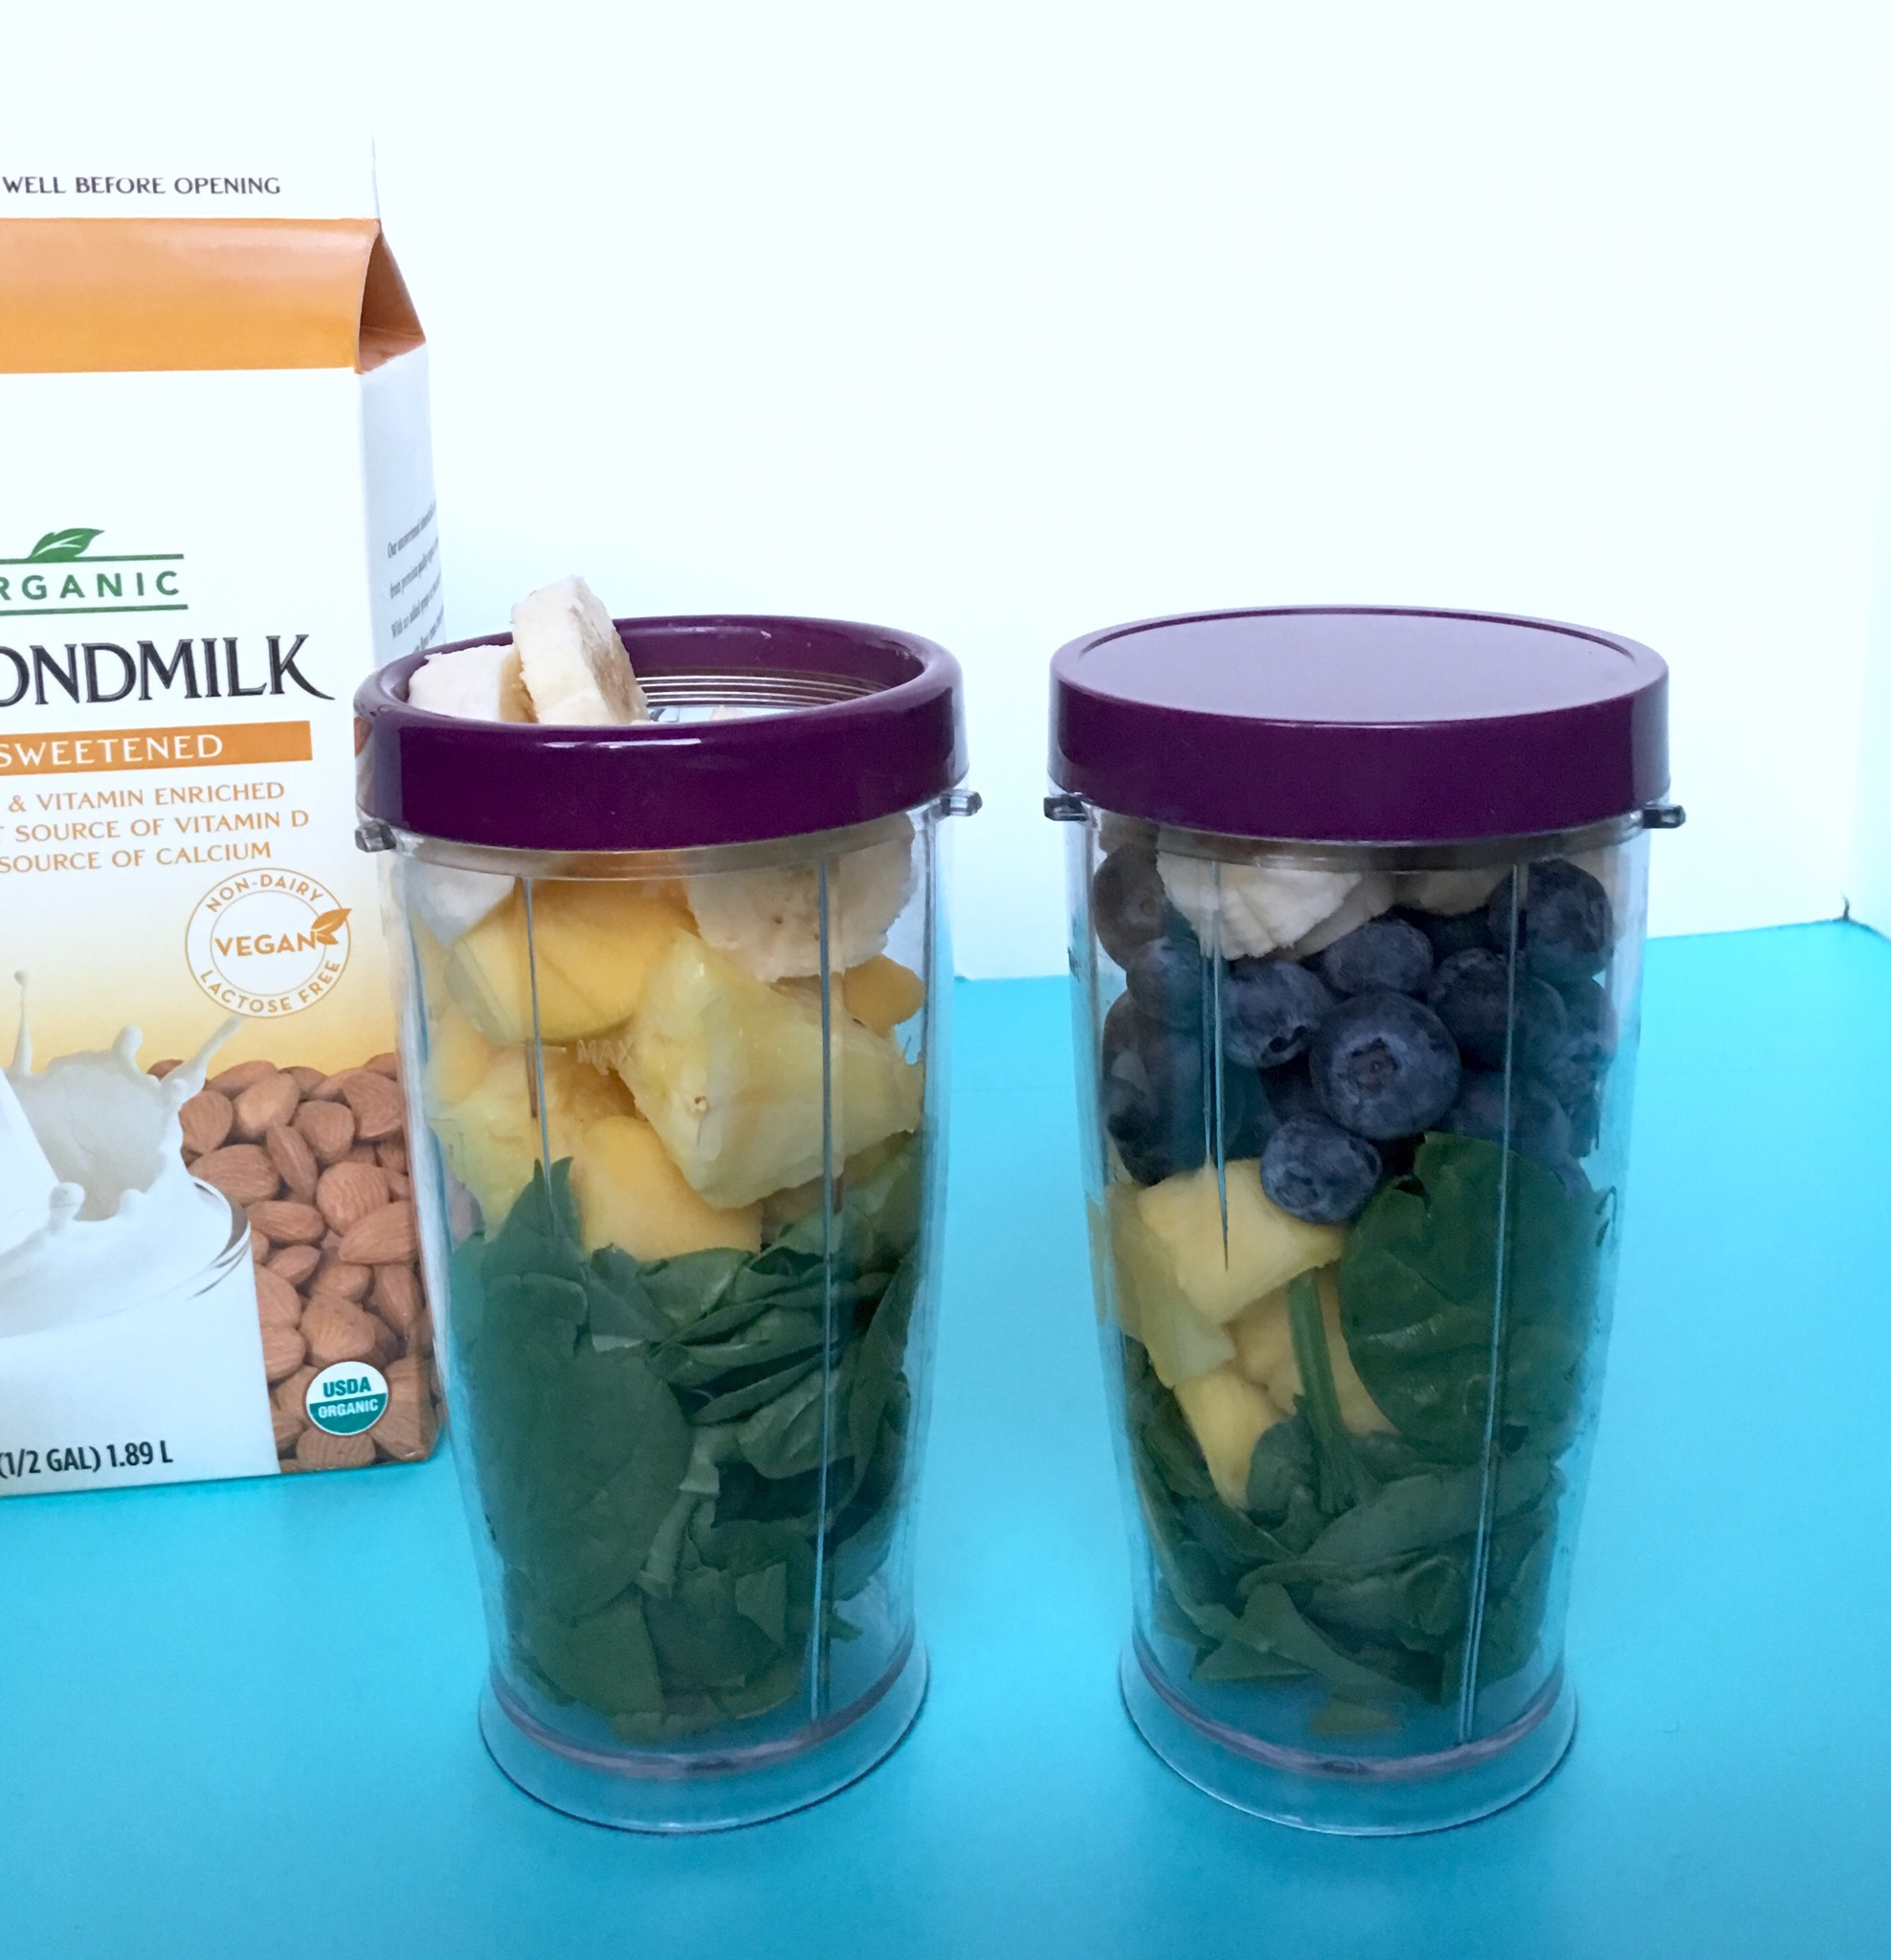 packing up a few smoothie cups ahead of time makes morning blending easy